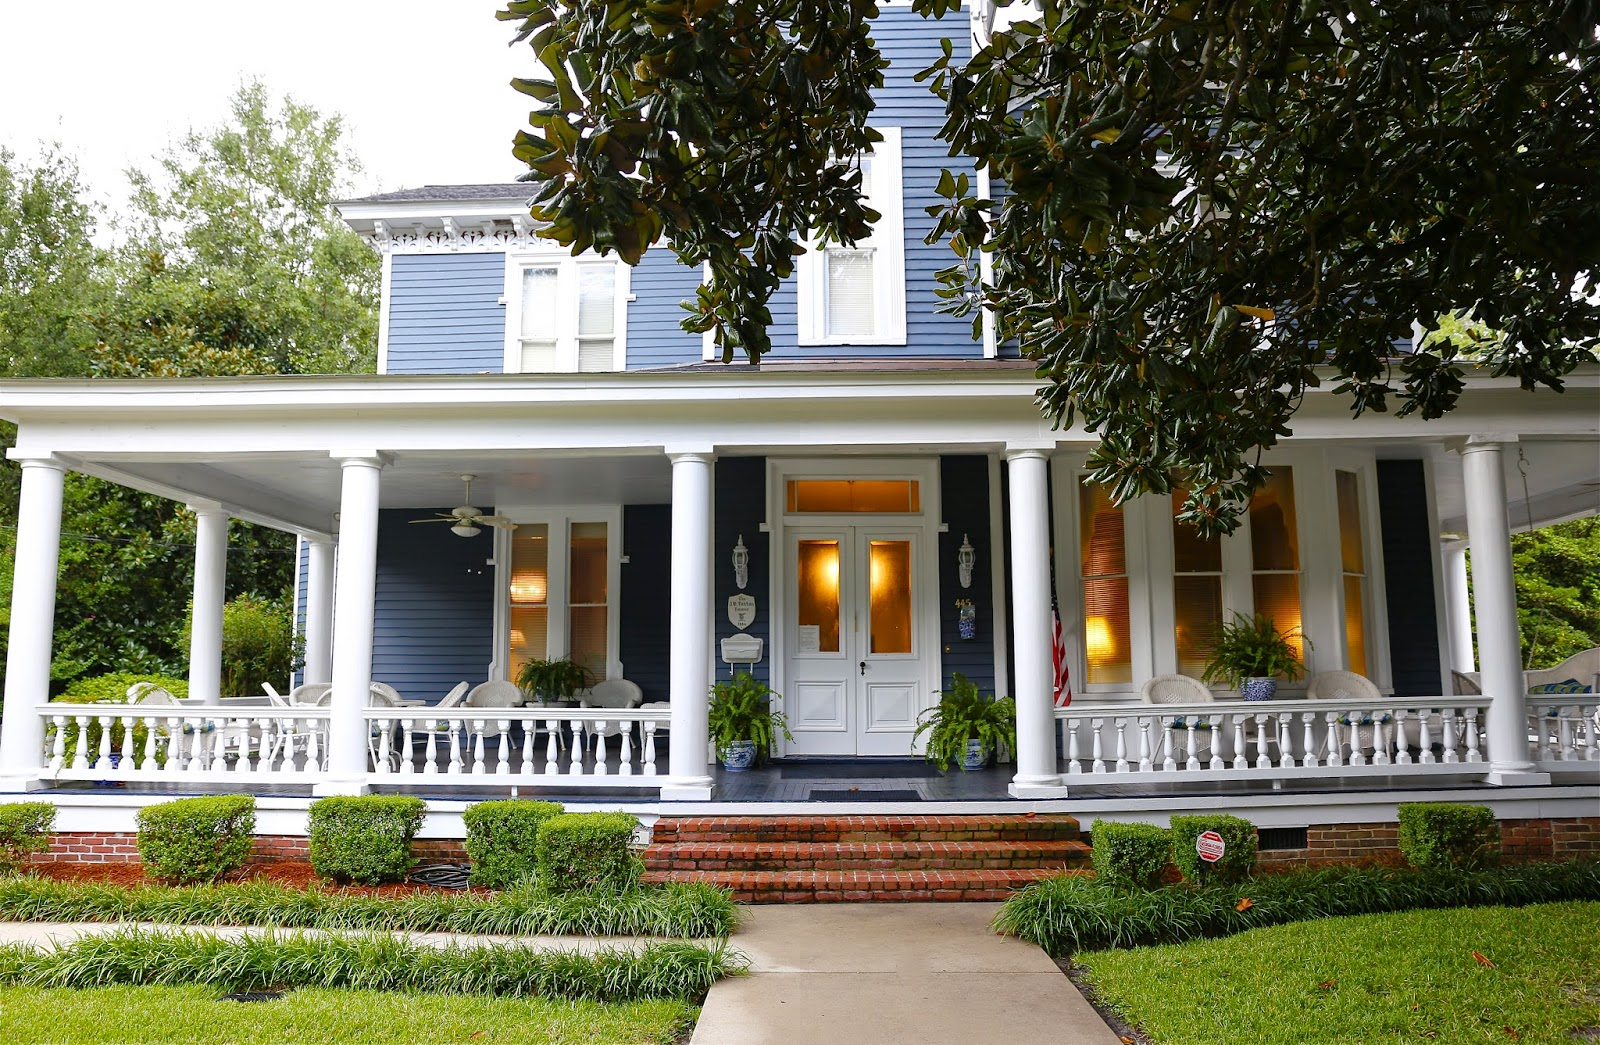 Sweet southern days historic homes in thomasville georgia for South georgia home builders